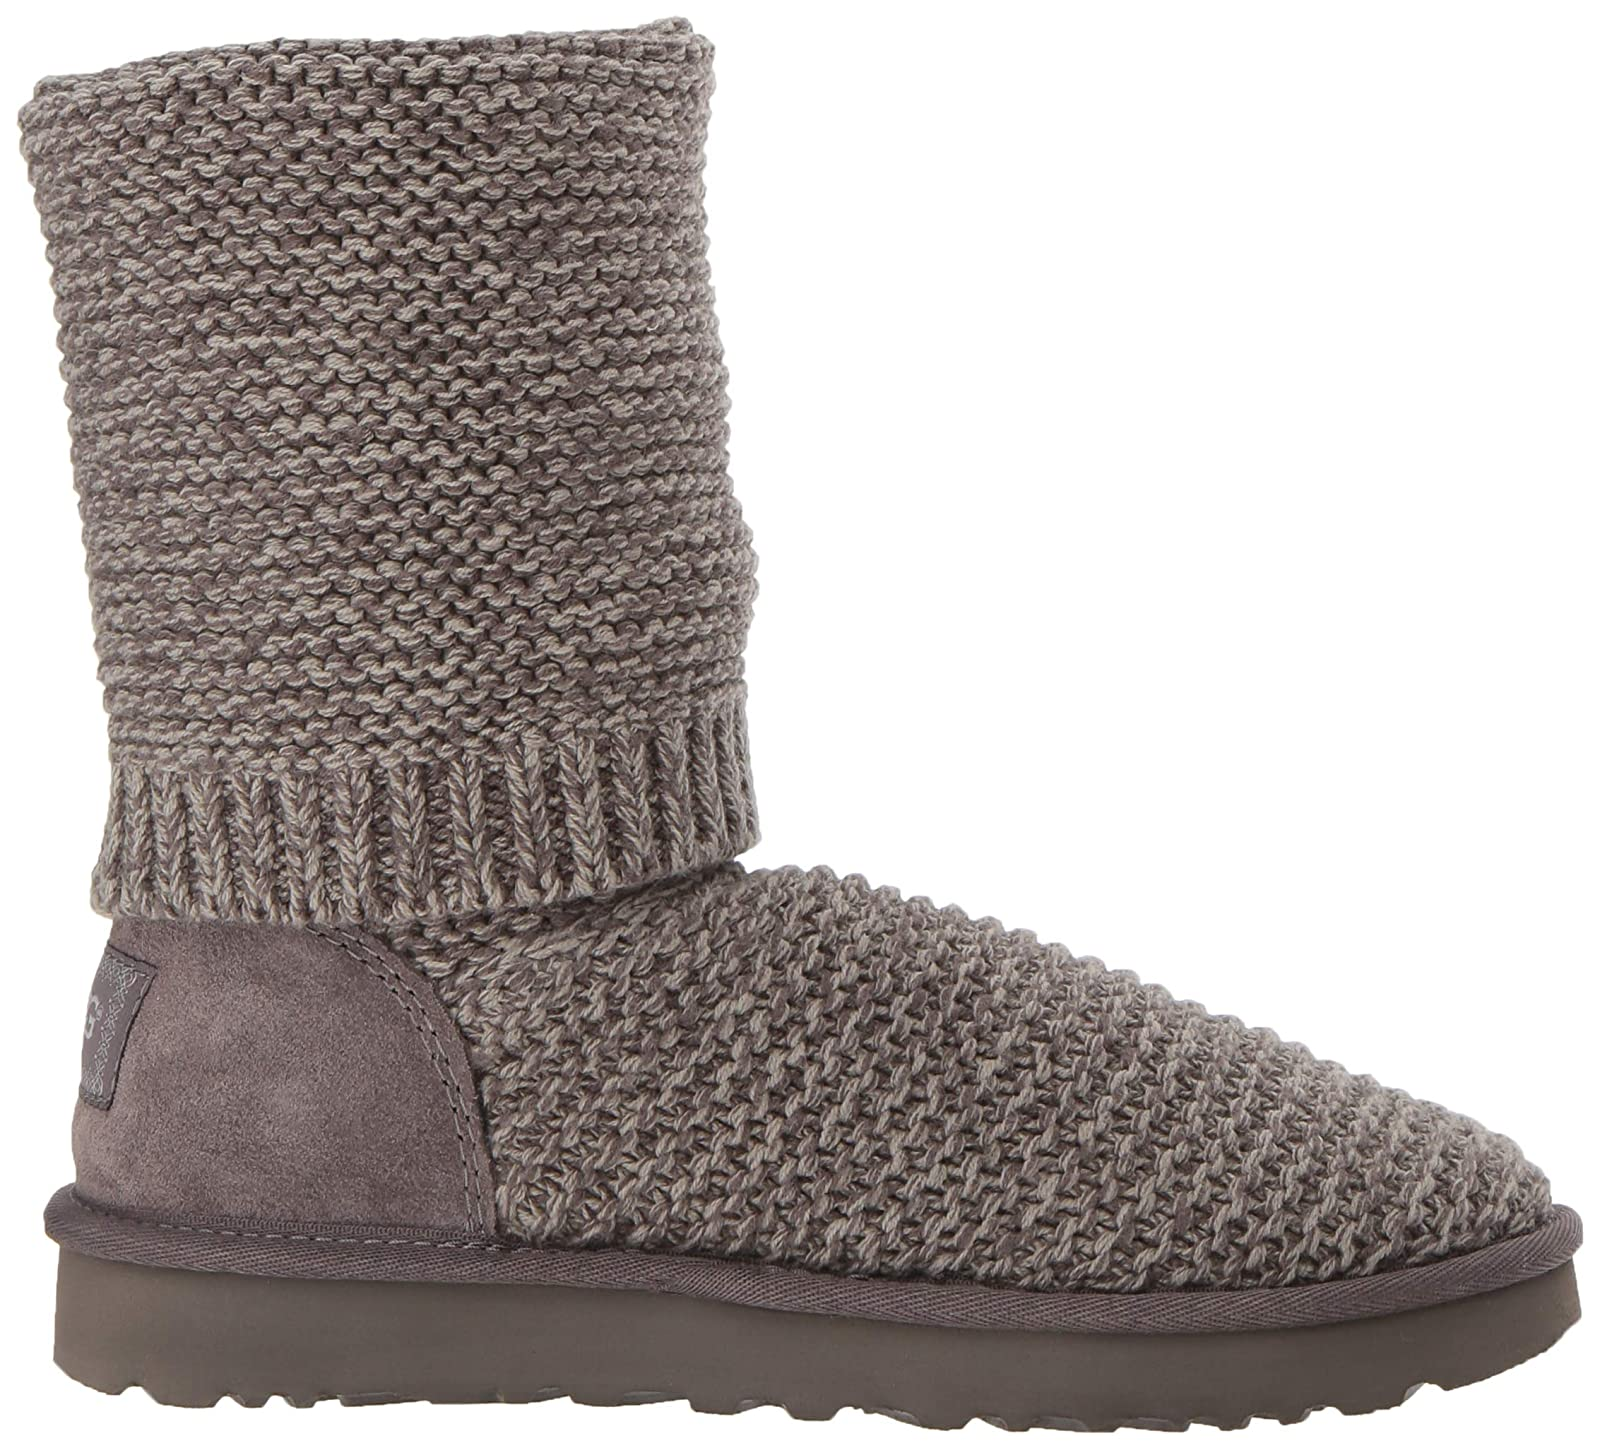 UGG Women's W PURL Cardy Knit Fashion Boot 1094949 - 7